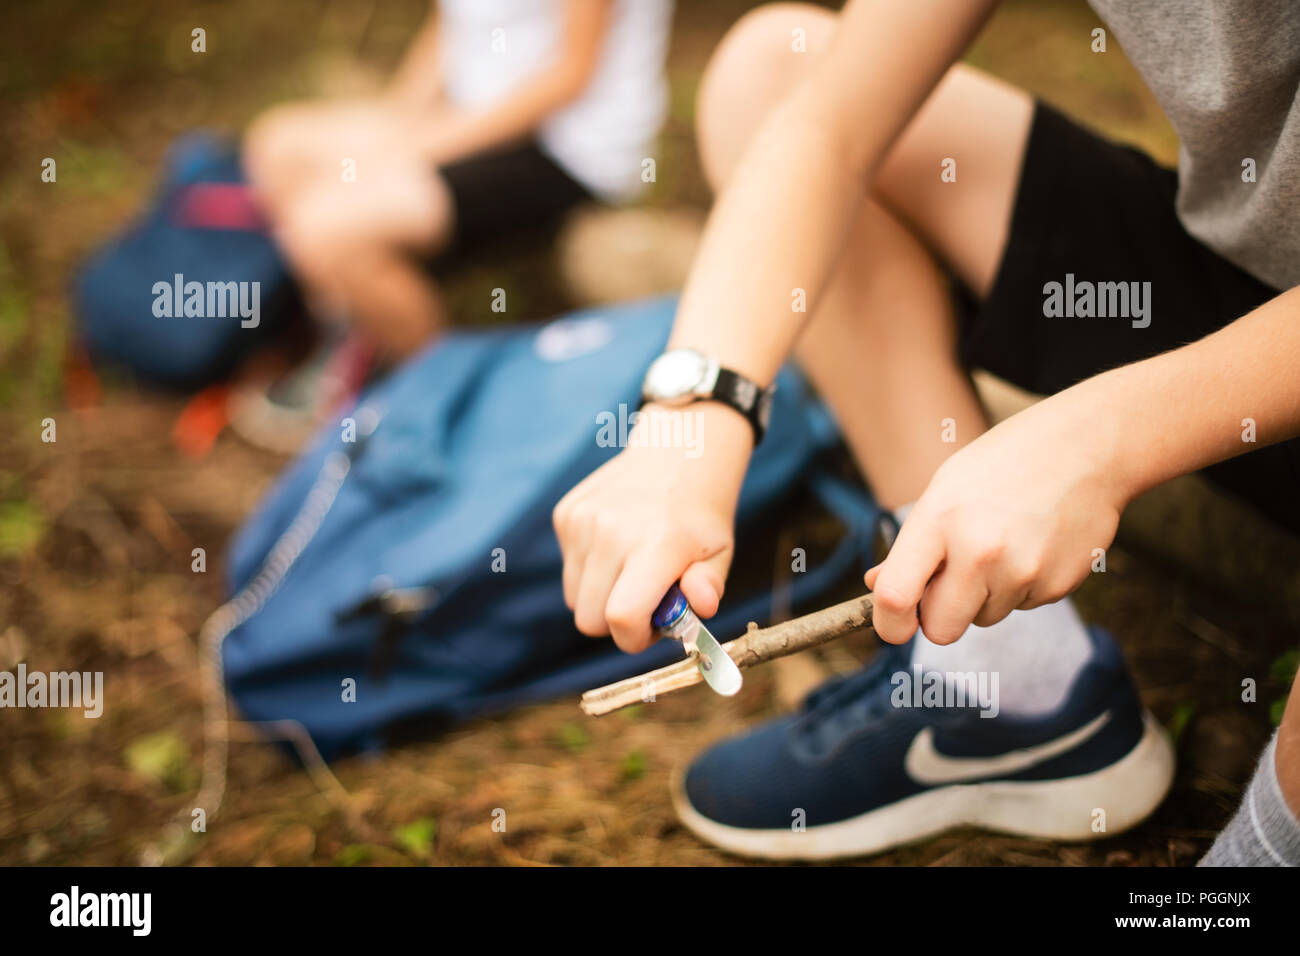 Boys whittling sticks to make pegs Stock Photo